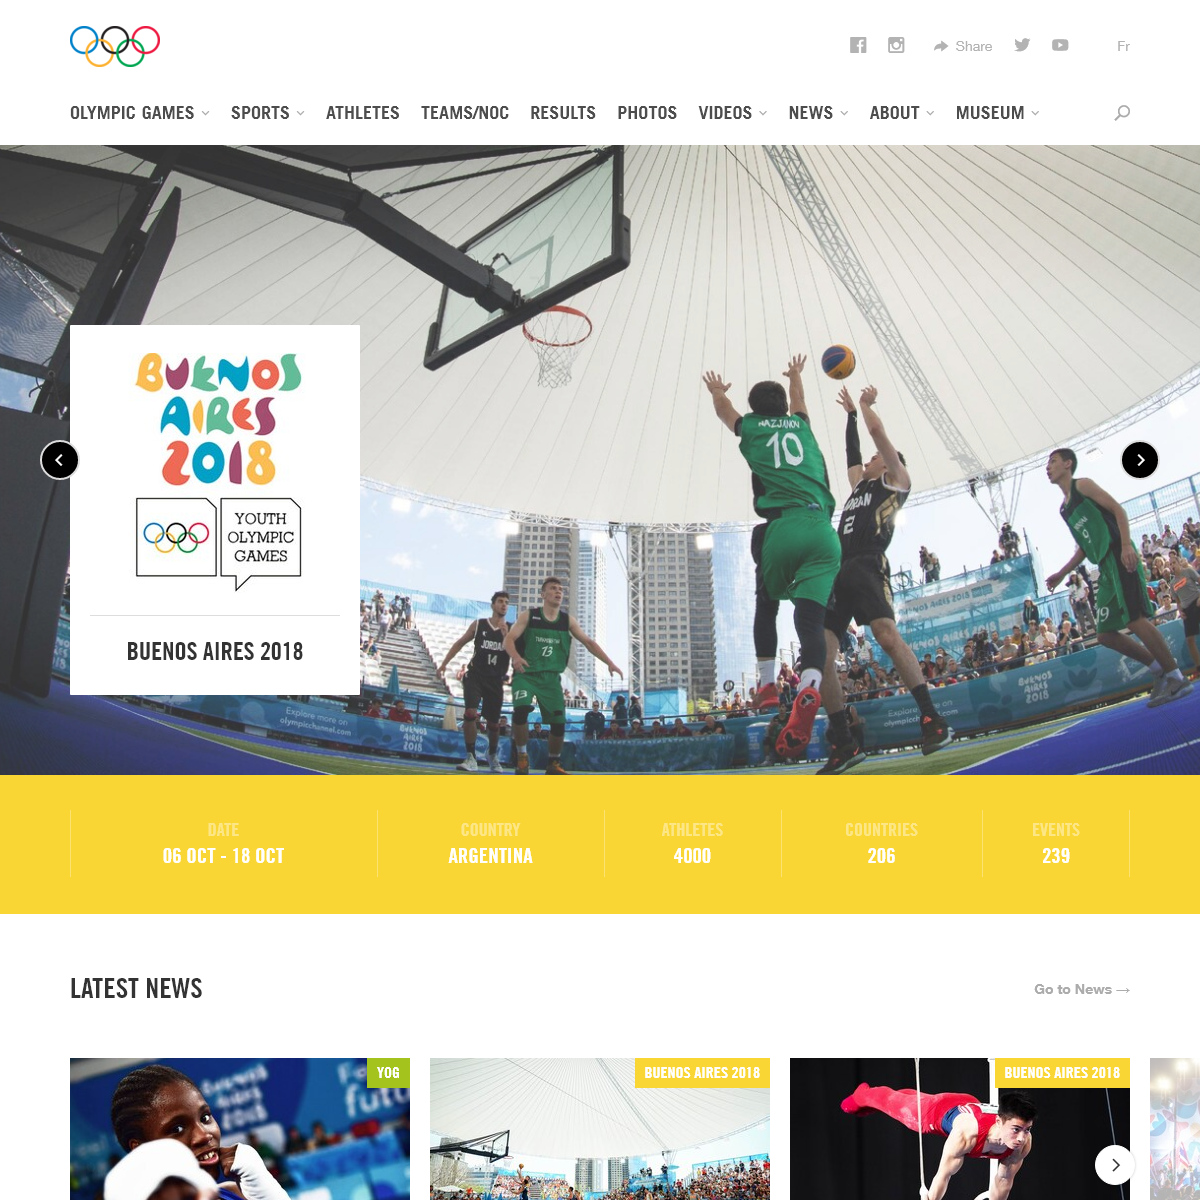 Buenos Aires 2018 Youth Olympic Games (YOG)